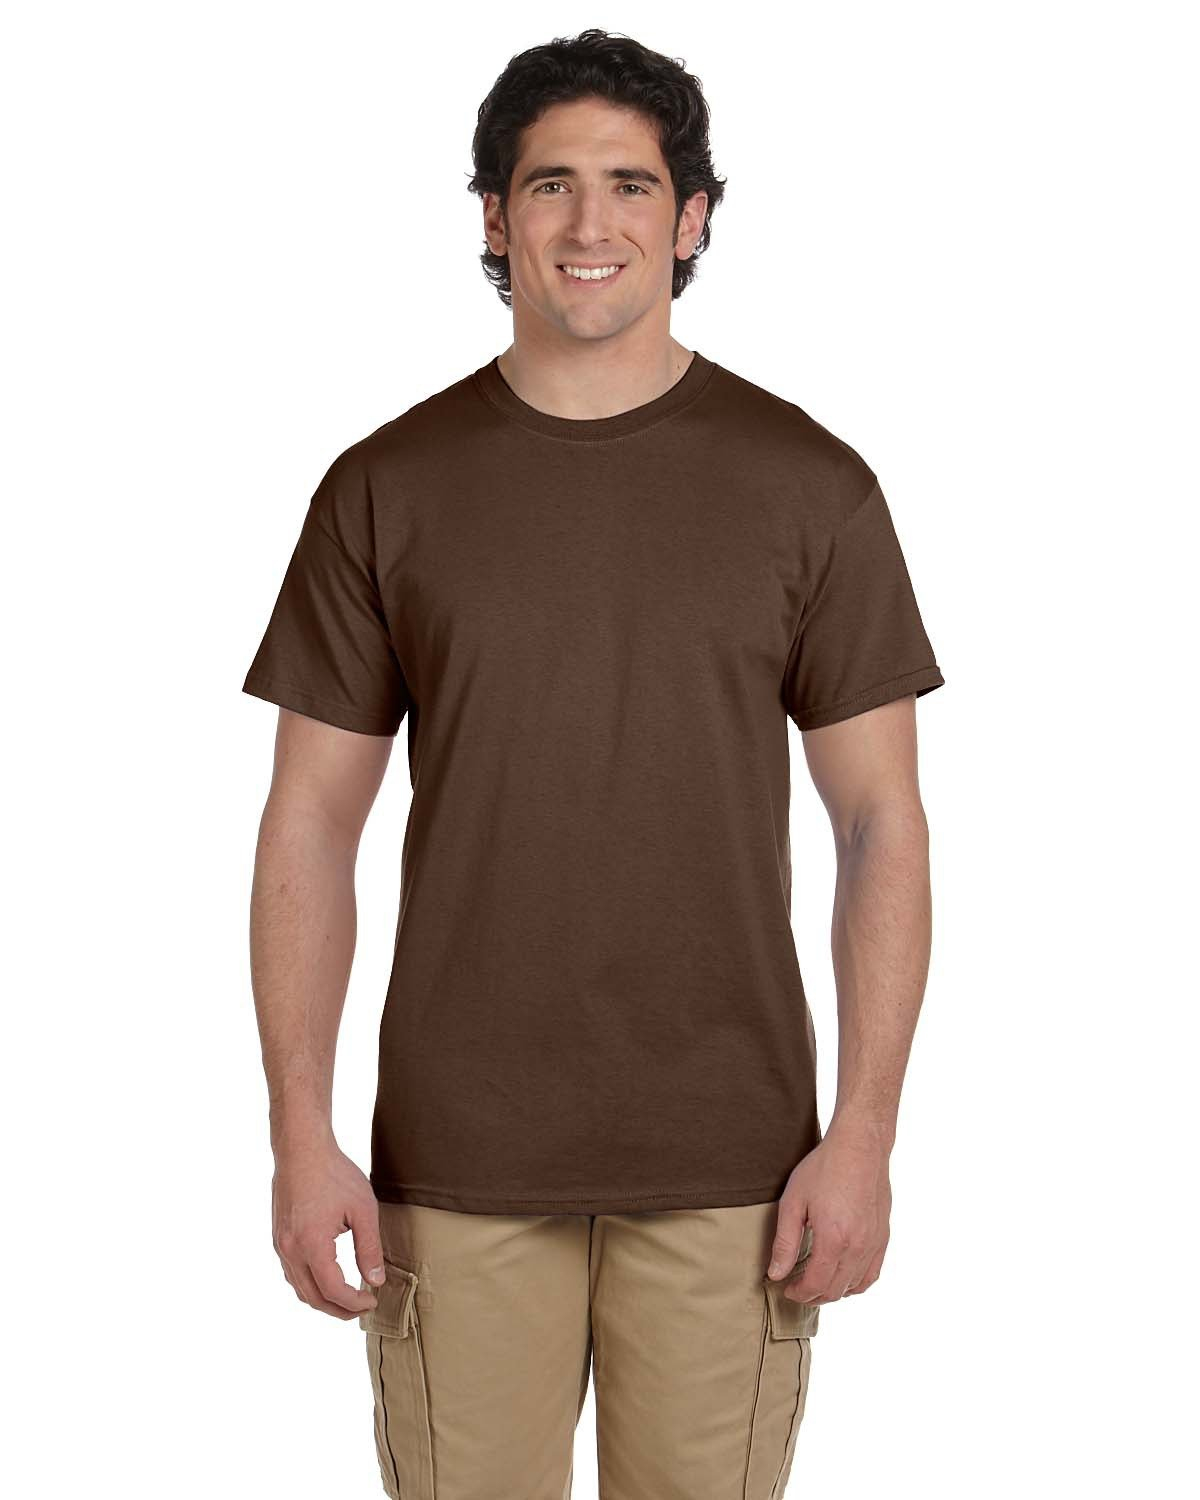 Fruit of the Loom Adult HD Cotton™ T-Shirt CHOCOLATE